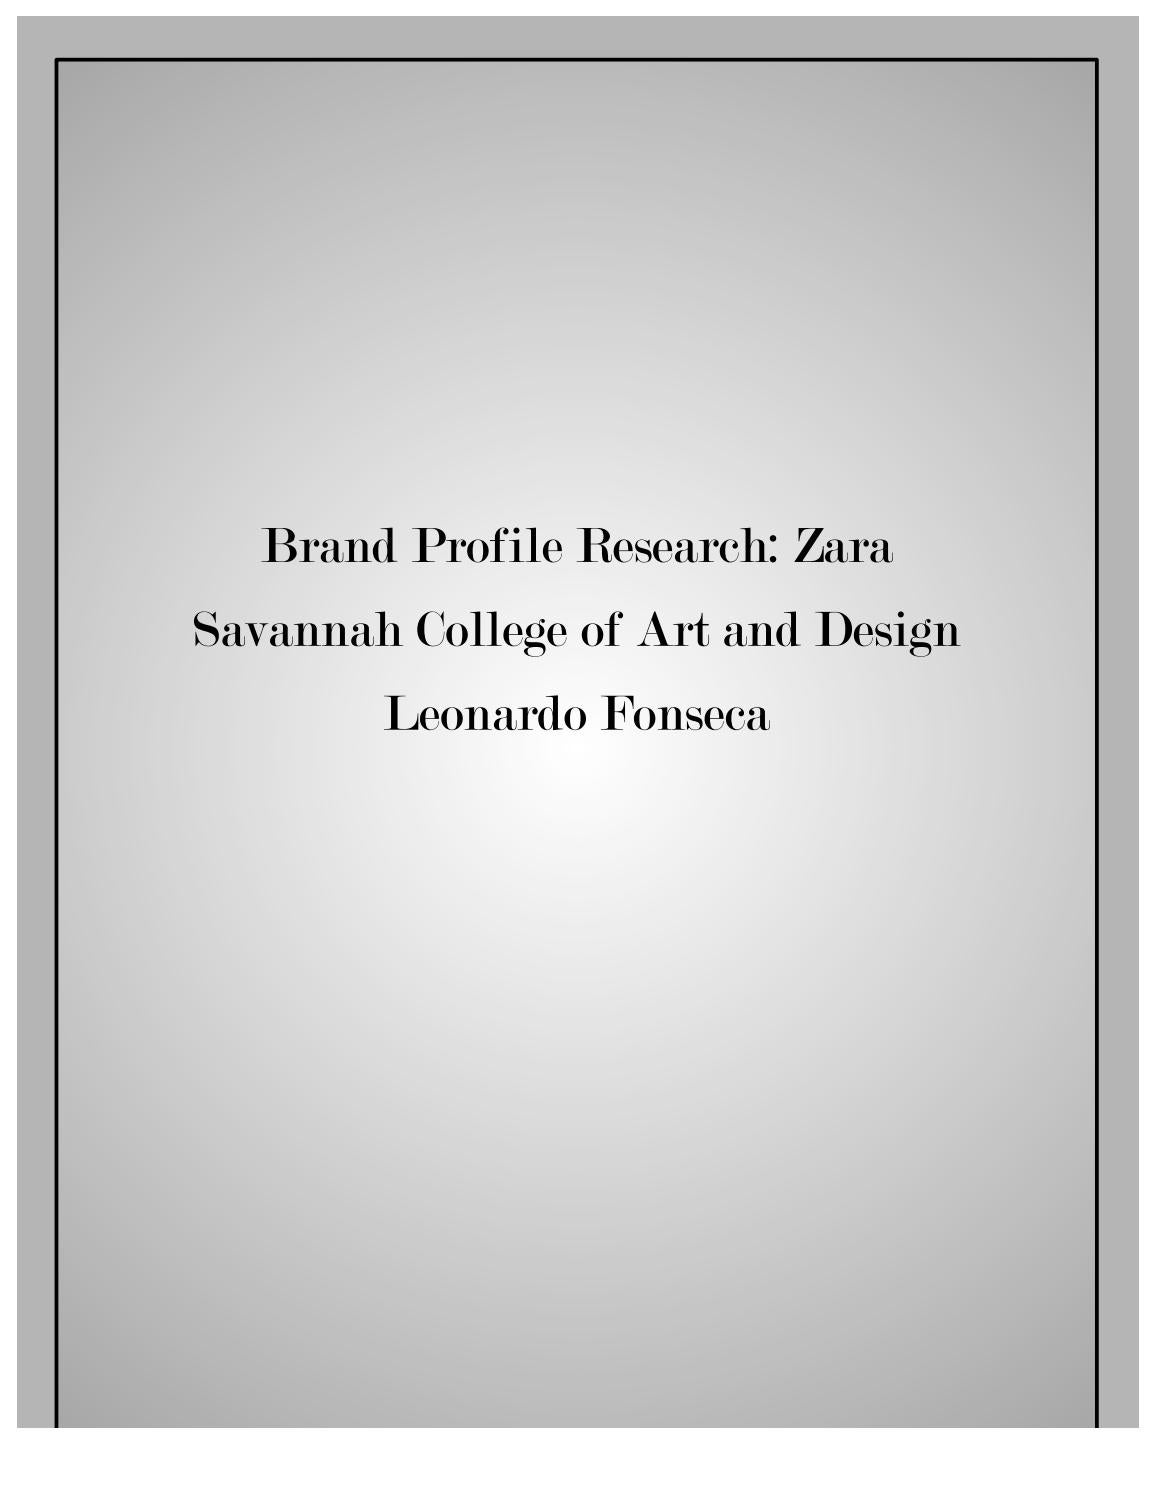 burberry mary katrantzou an analysis of the global luxury  zara brand profile research